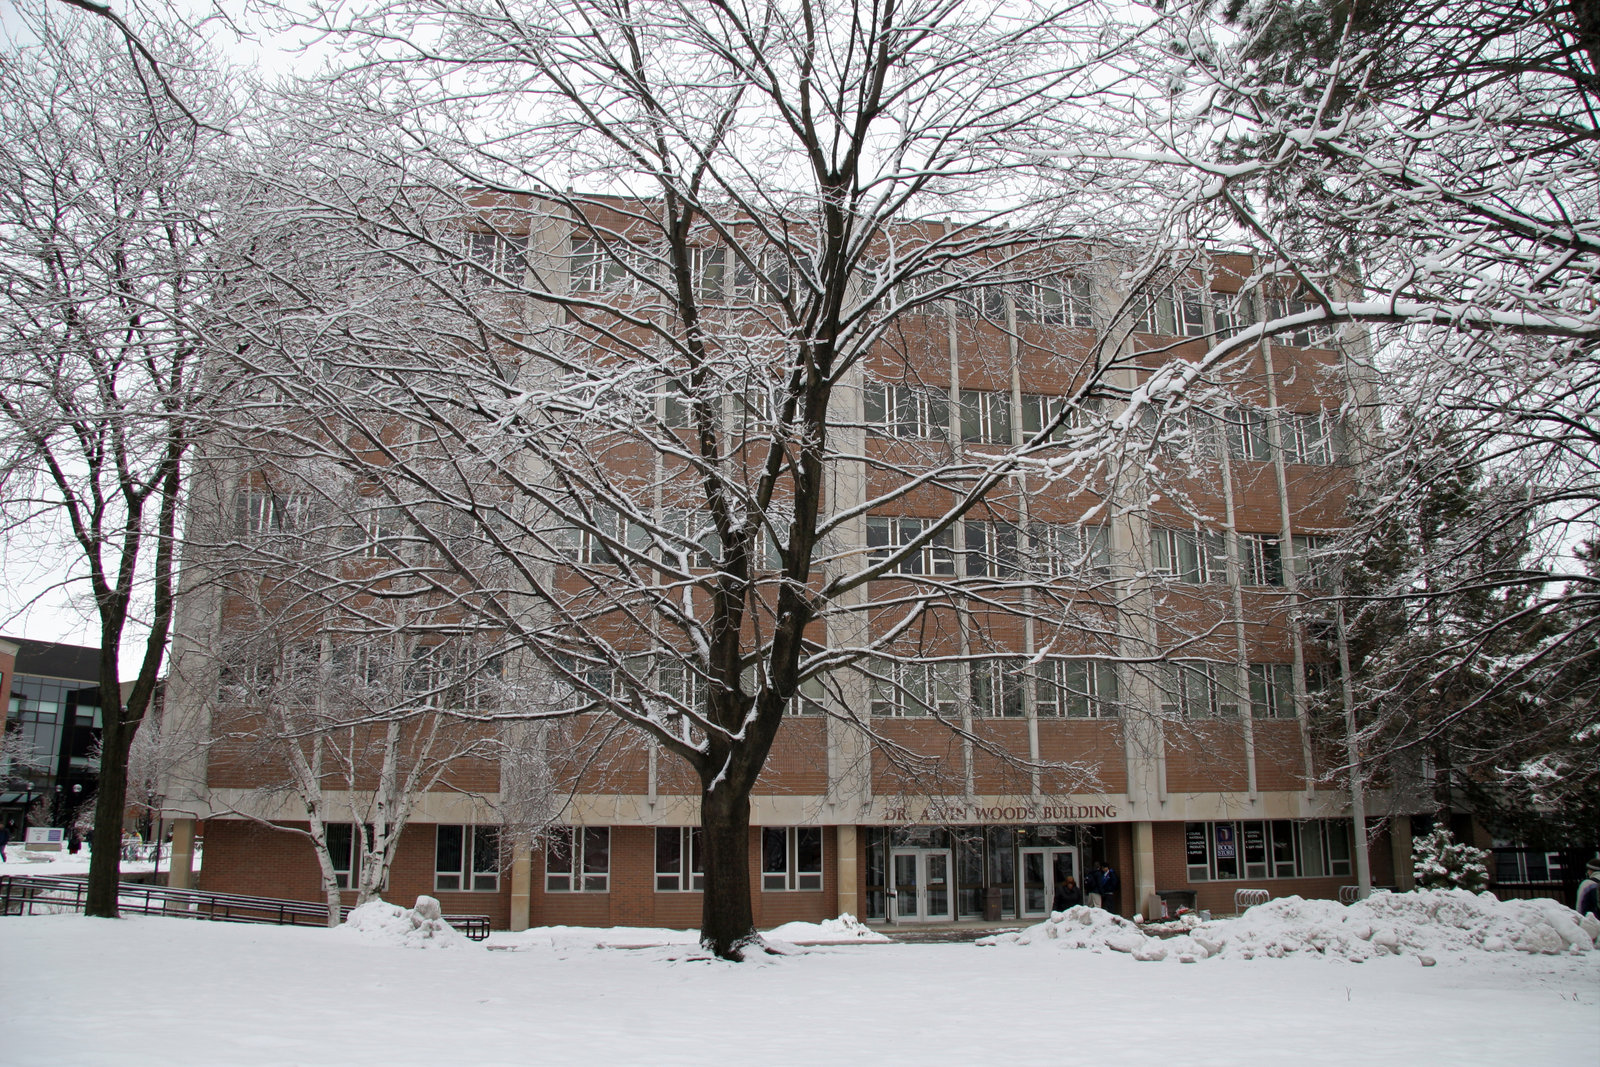 Dr. Alvin Woods Building, Wilfrid Laurier University